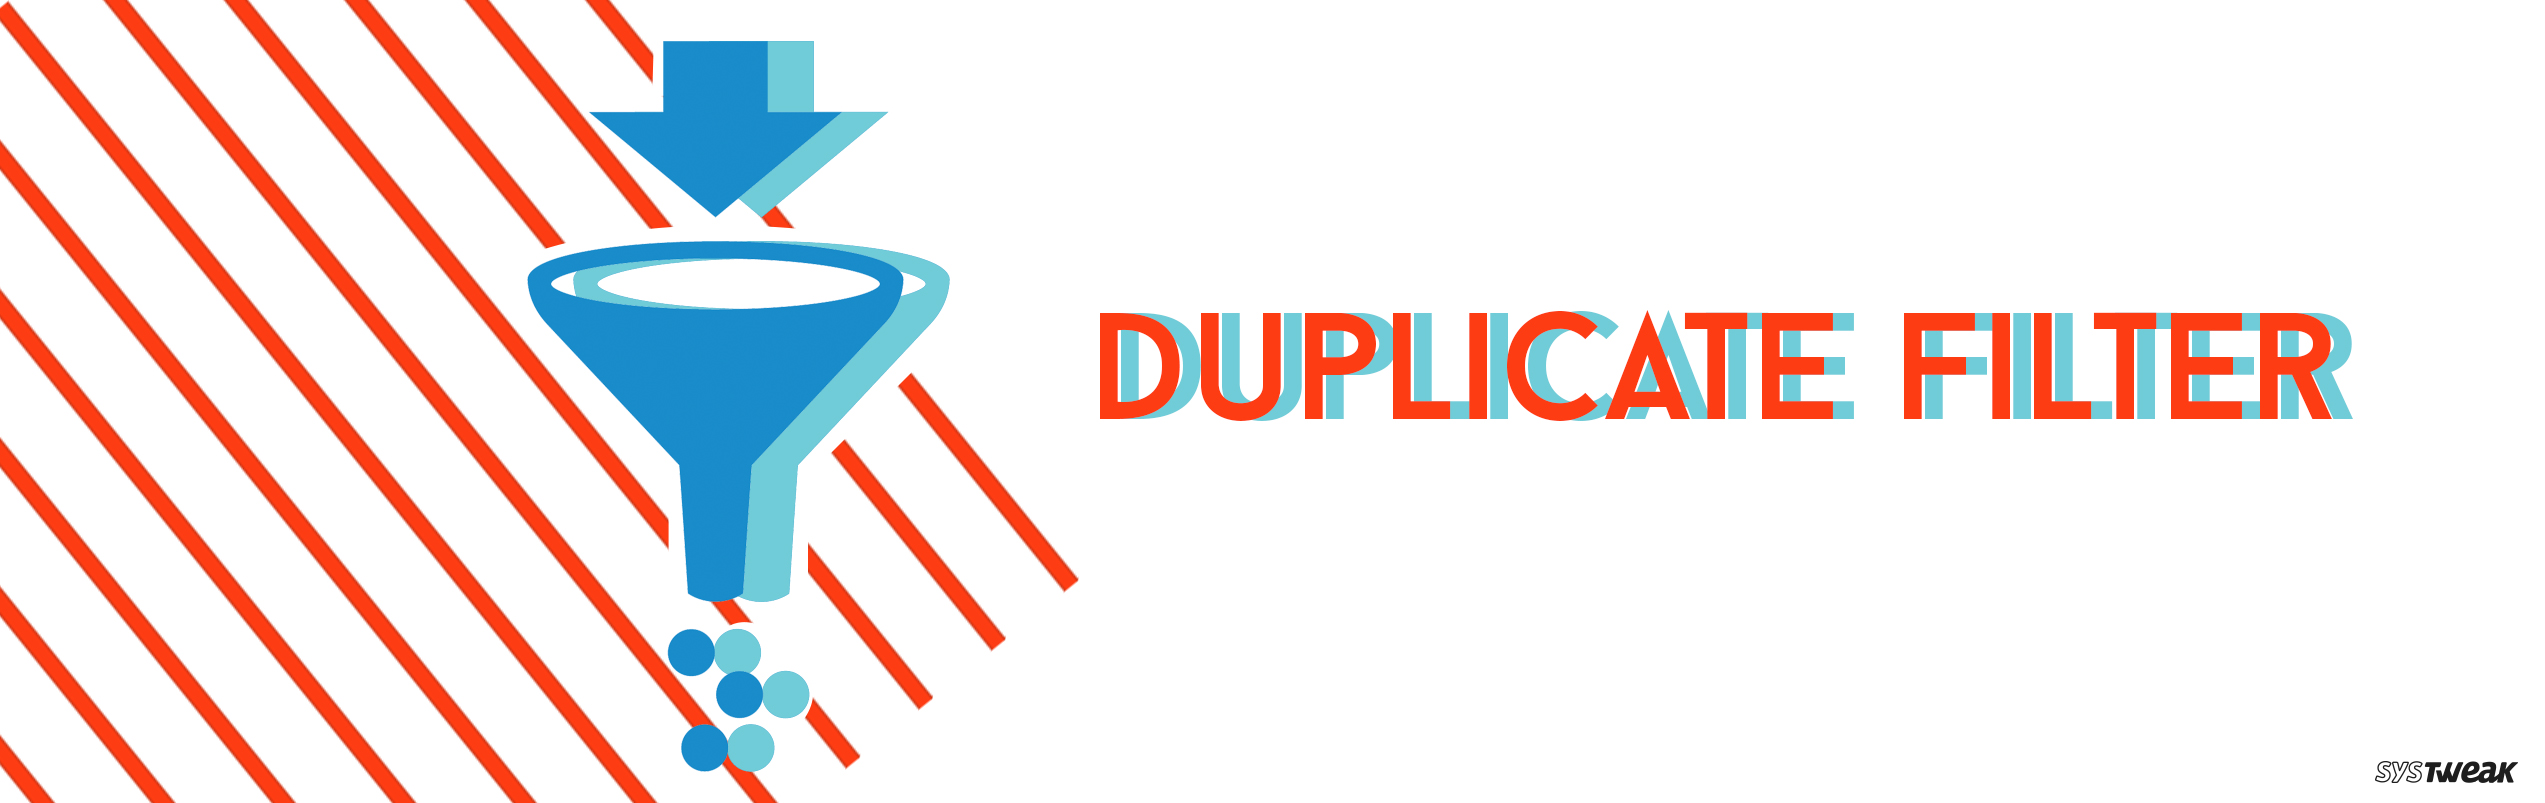 Duplicate Filter: Tool for Removing Duplicates